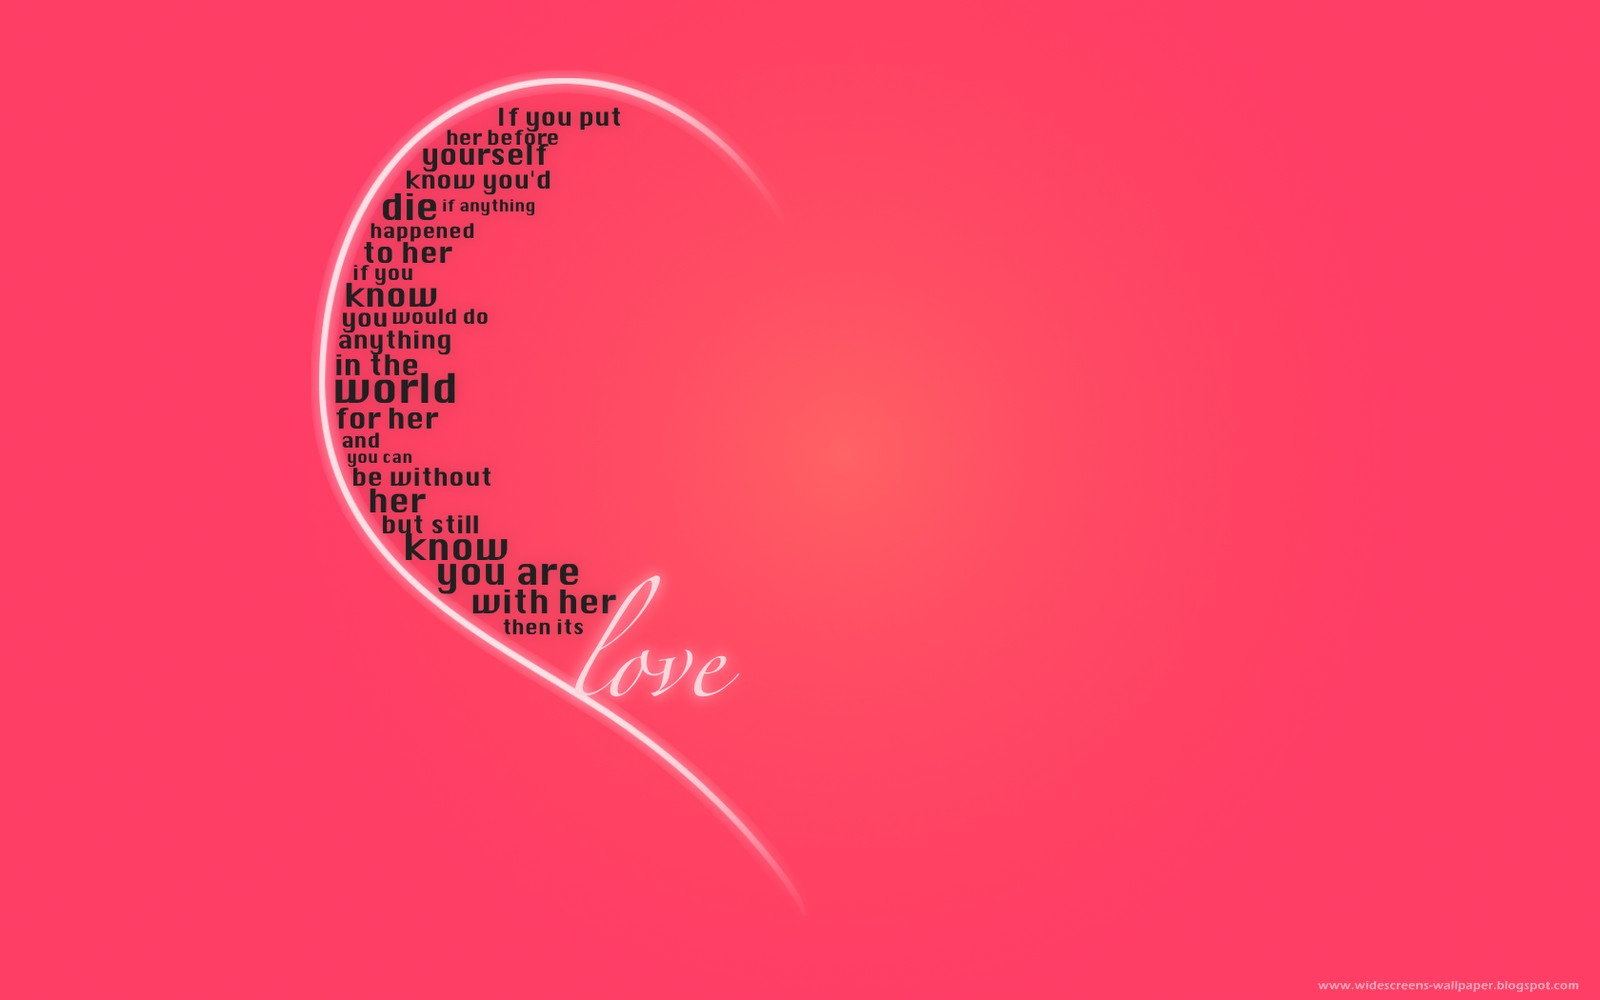 Hd wallpaper quotes on love - Beautiful Love Quotes Background Wallpaper Full Hd Wallpapers